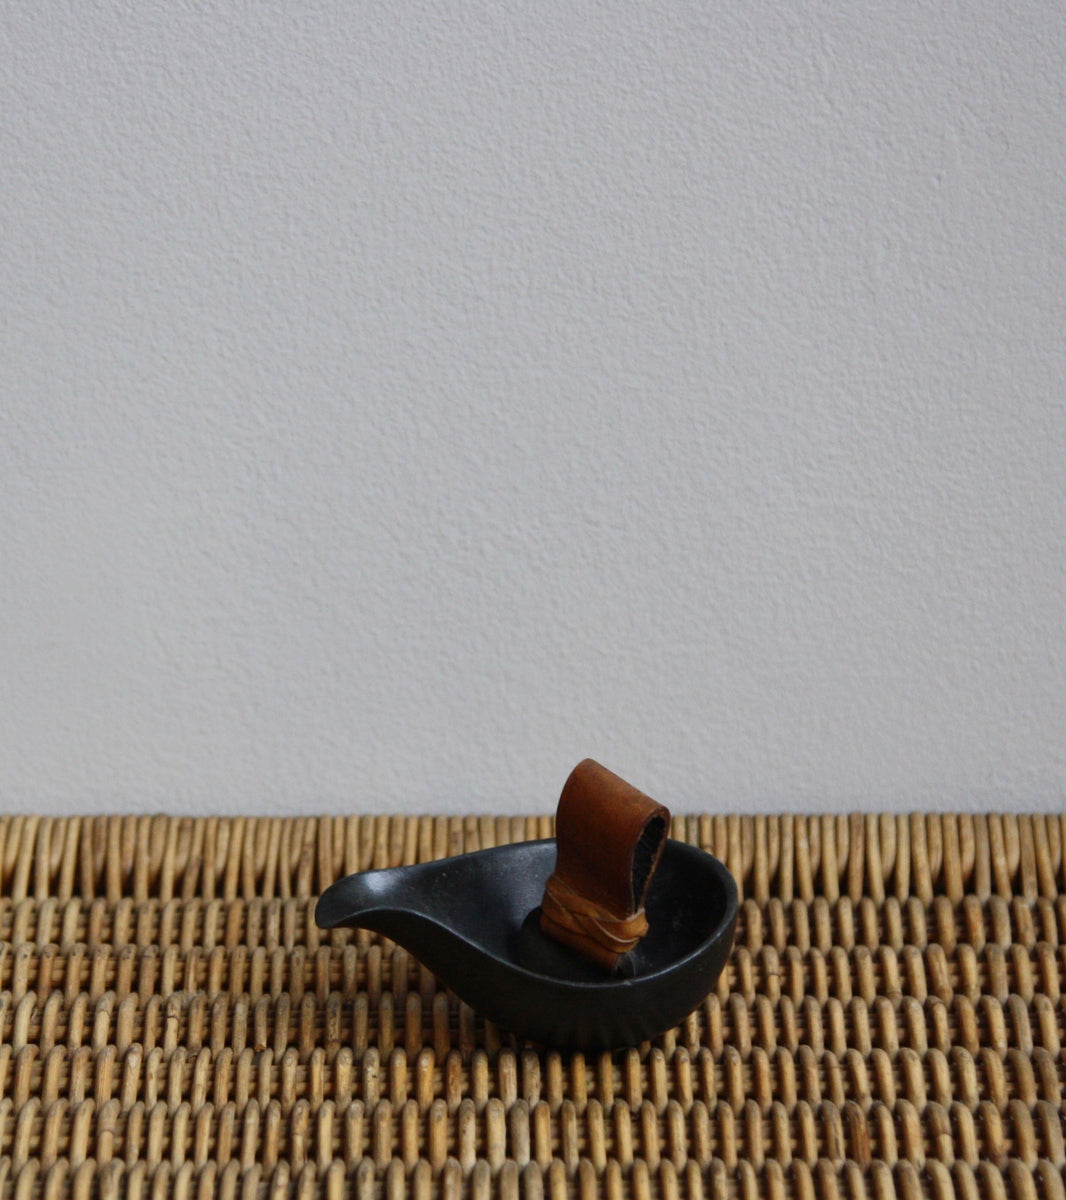 Ashtray Carl Auböck - Image 2